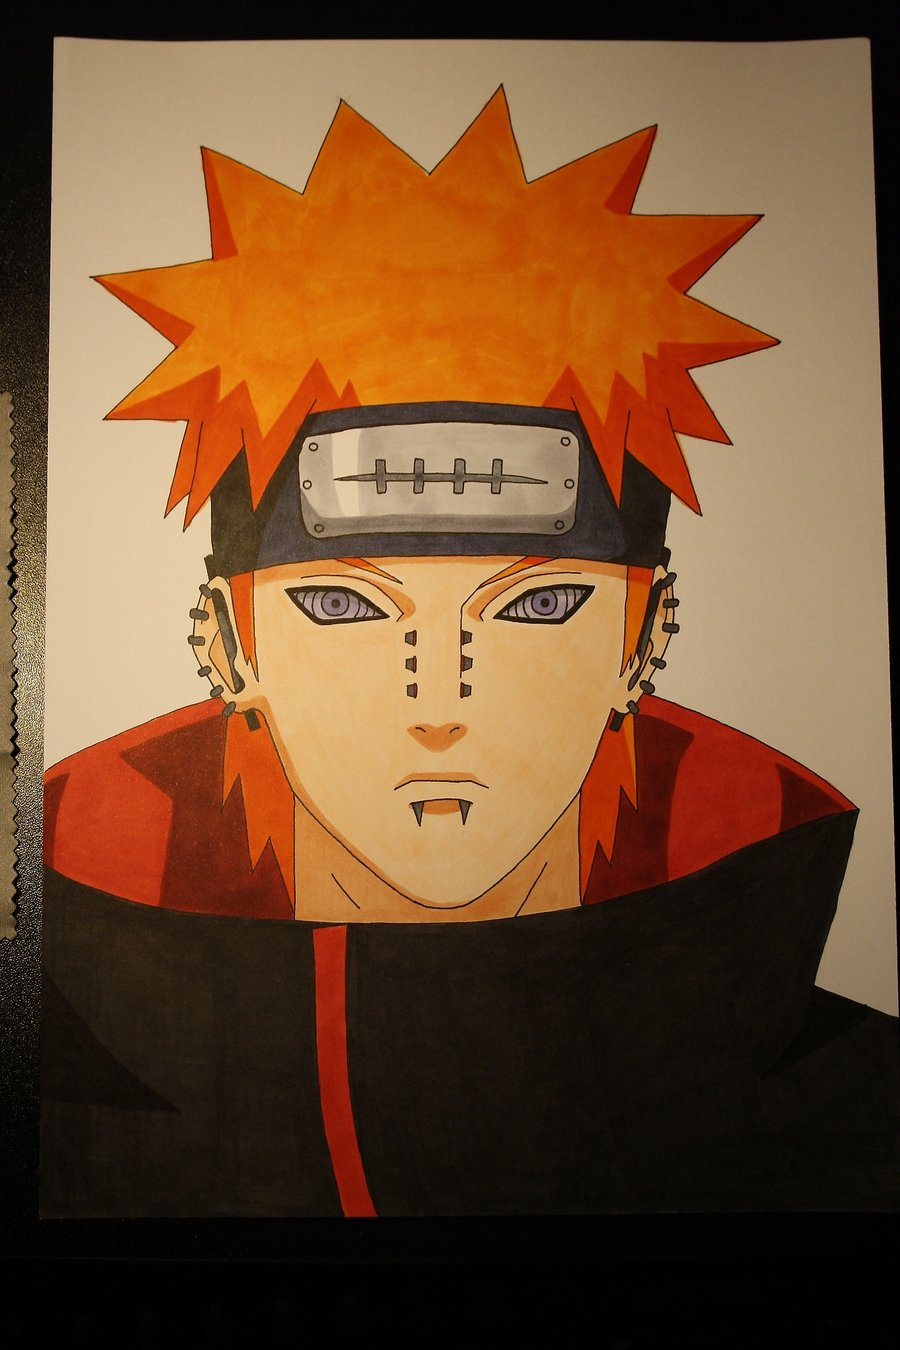 Drawn naruto pein My drawing by on My